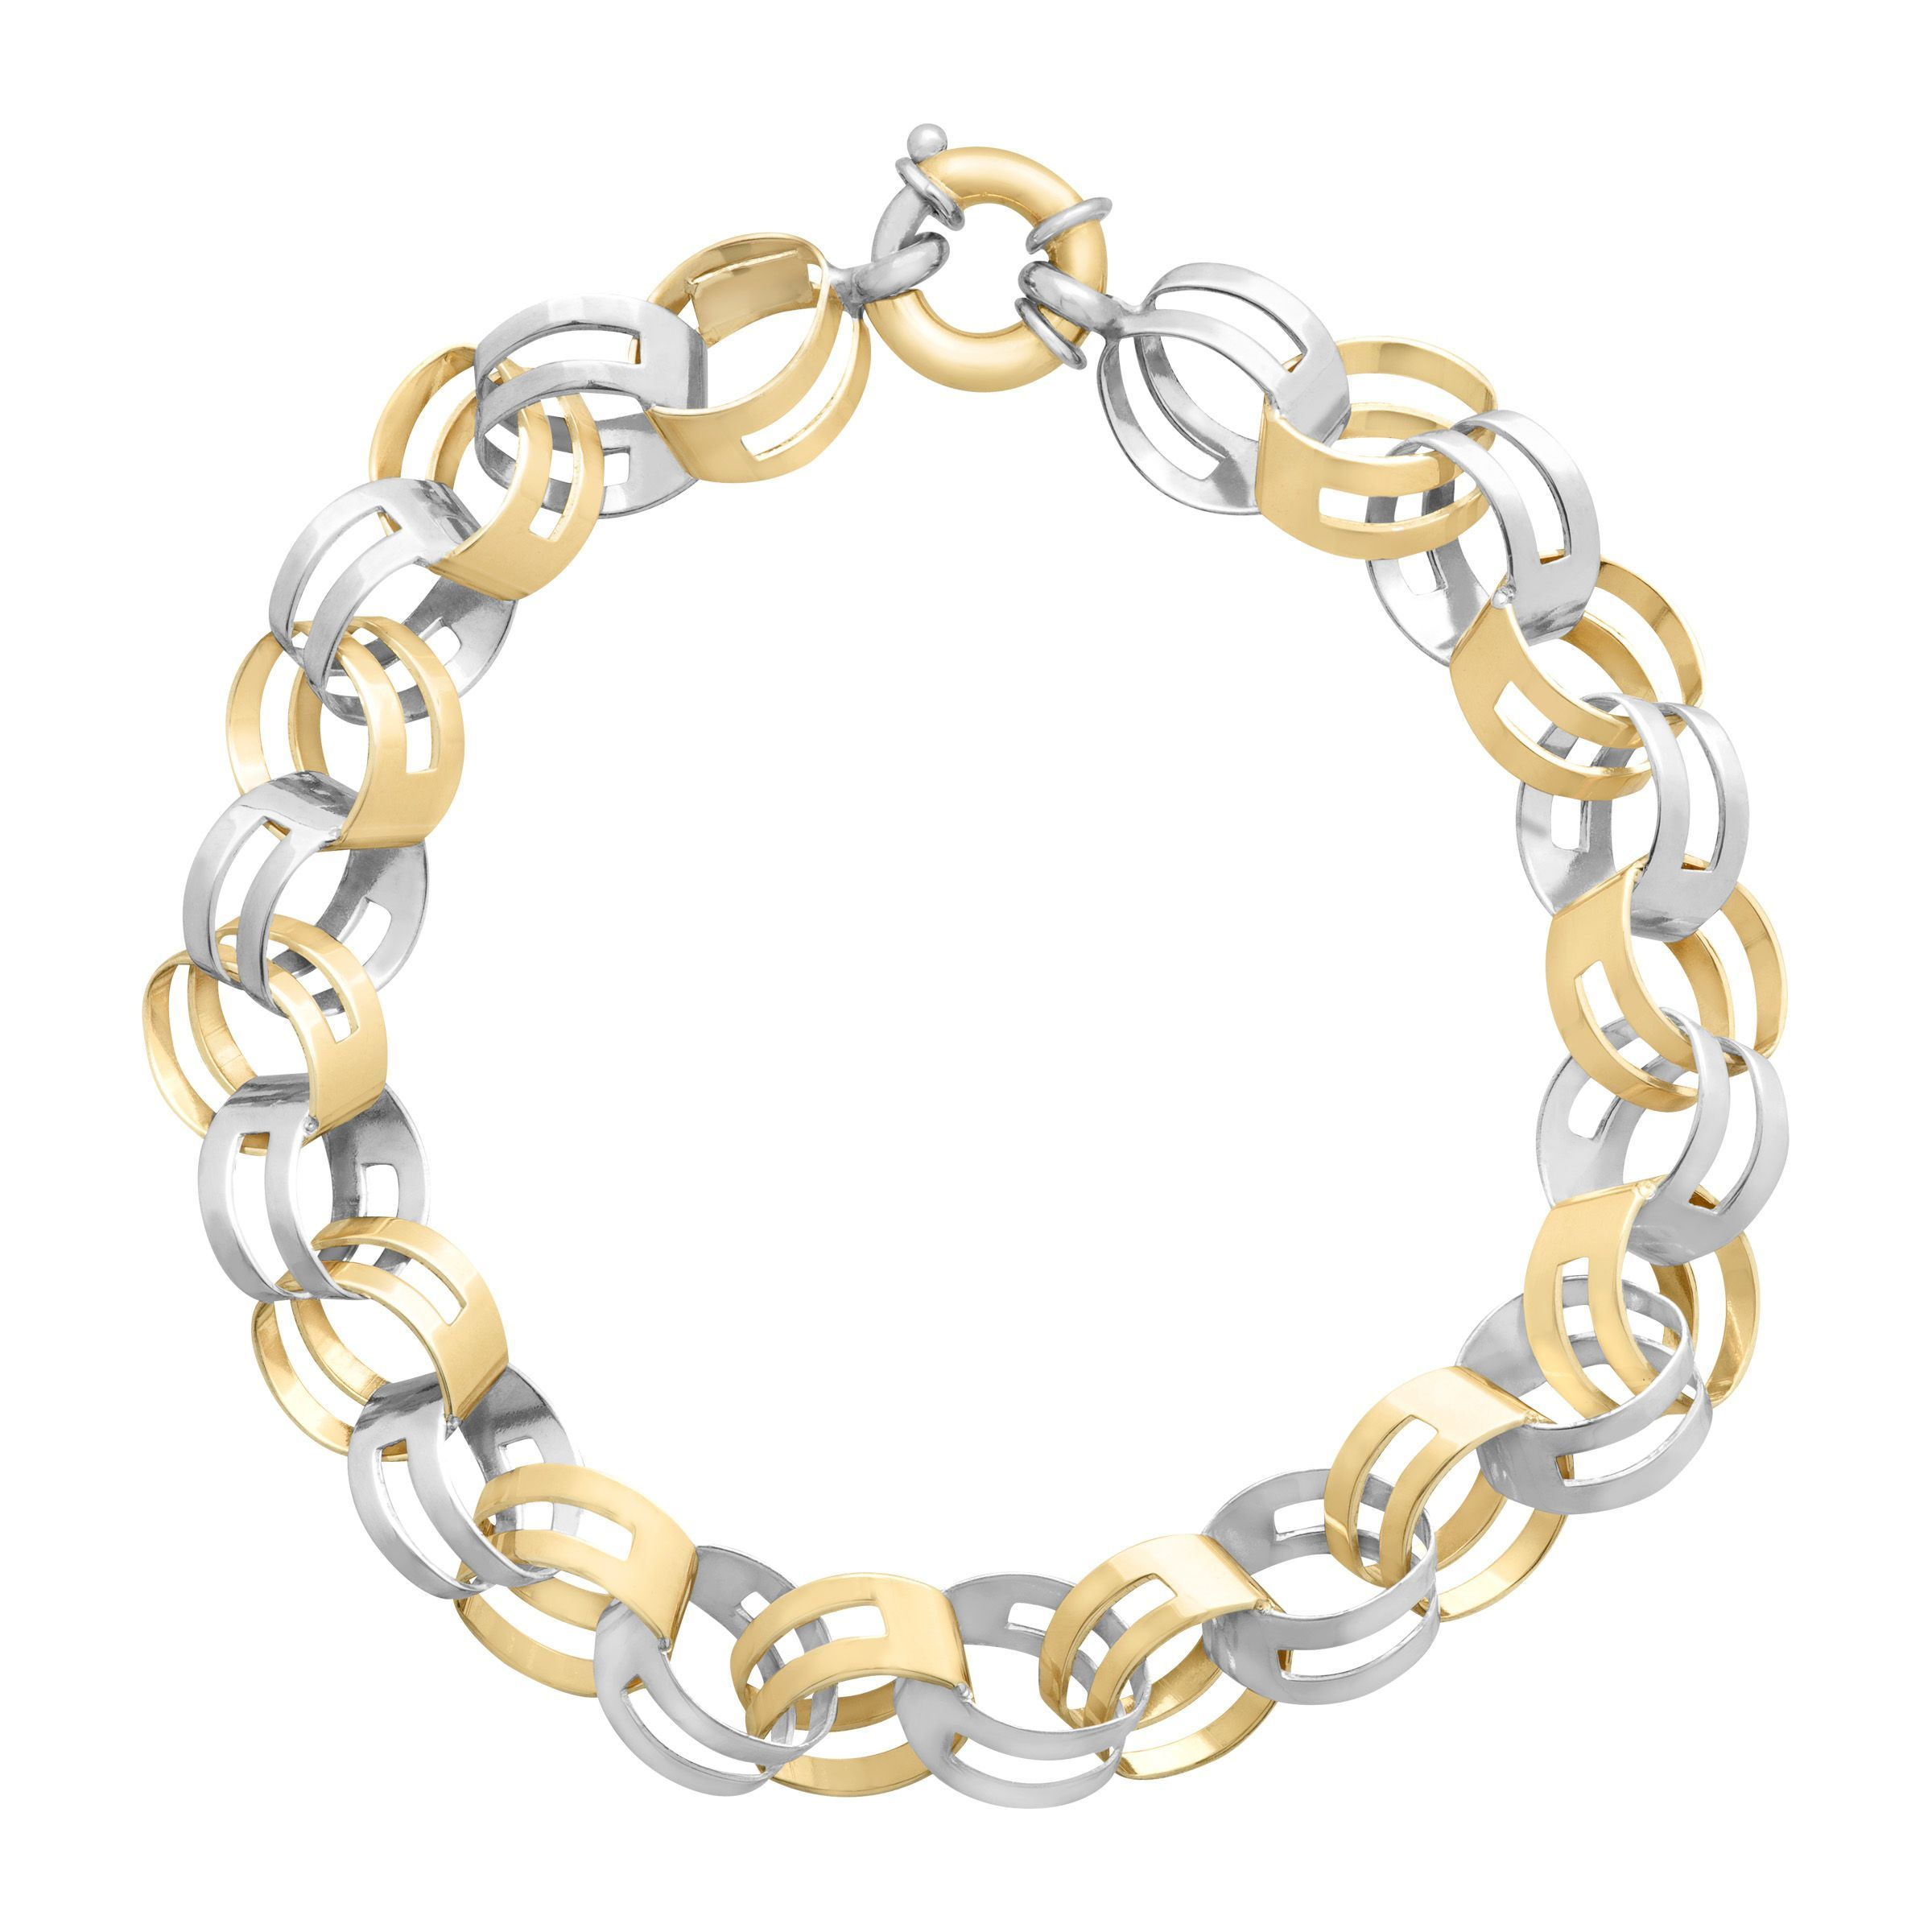 Double-Link Bracelet in 14K Gold-Bonded Sterling Silver